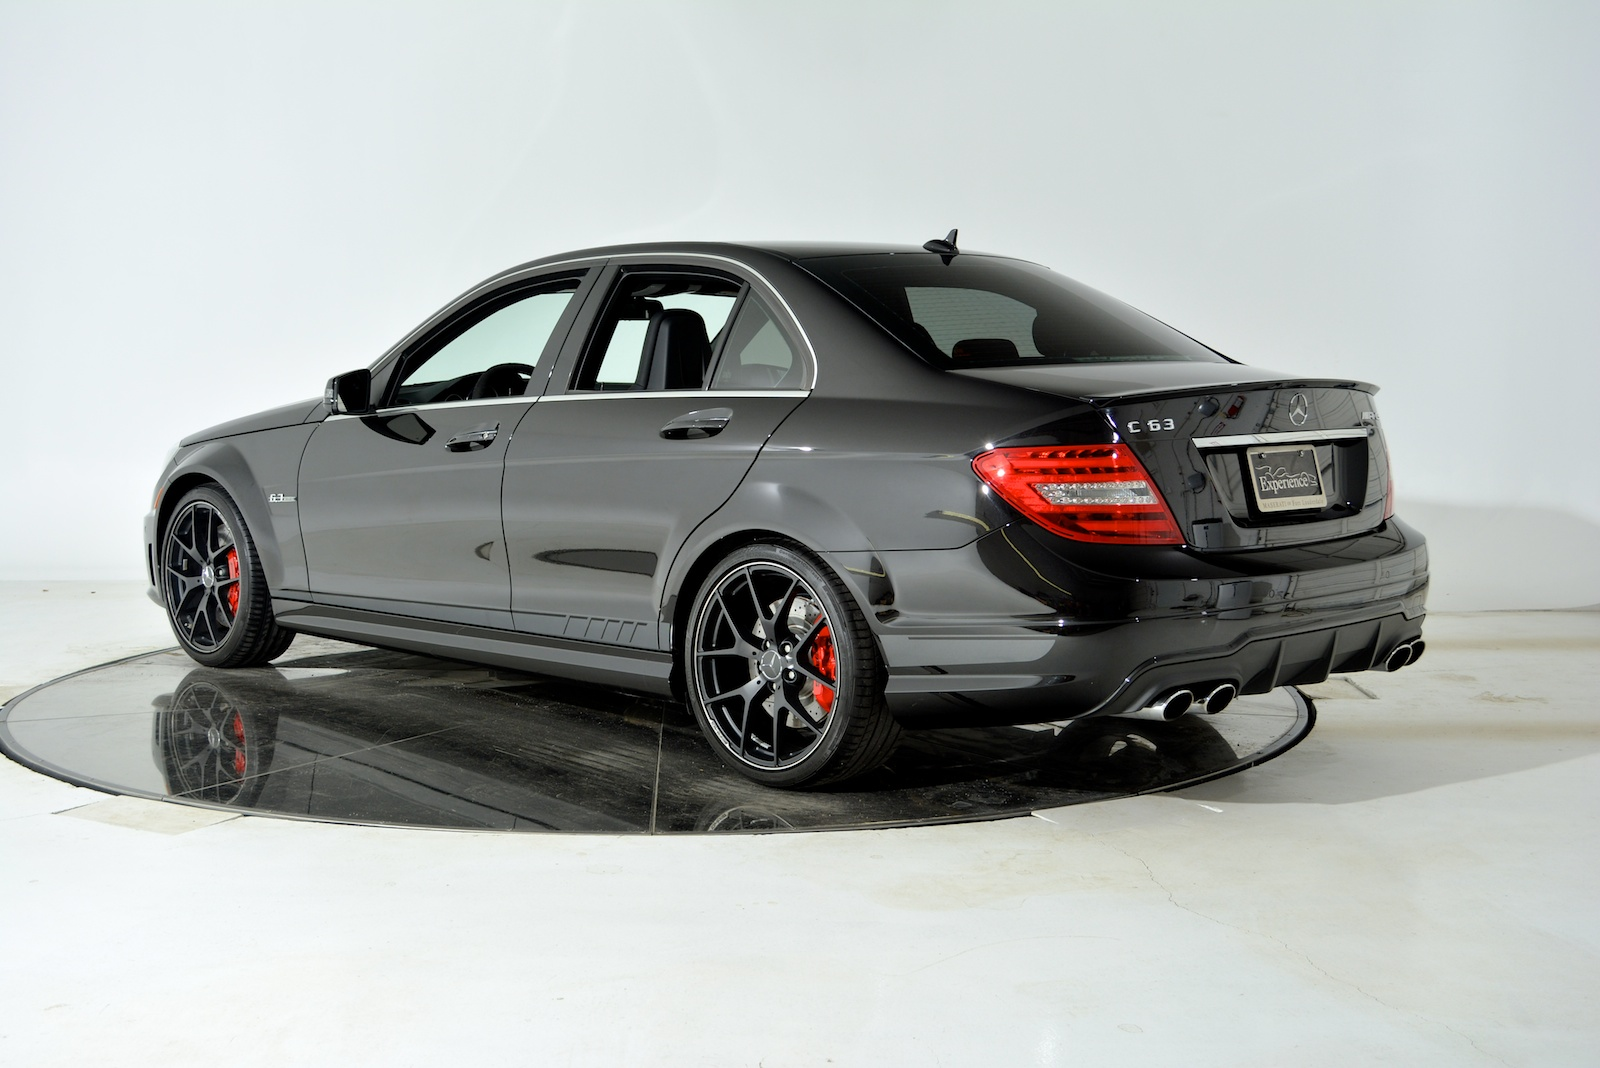 2014 mercedes benz c63 amg edition 507 car photos catalog 2018. Black Bedroom Furniture Sets. Home Design Ideas